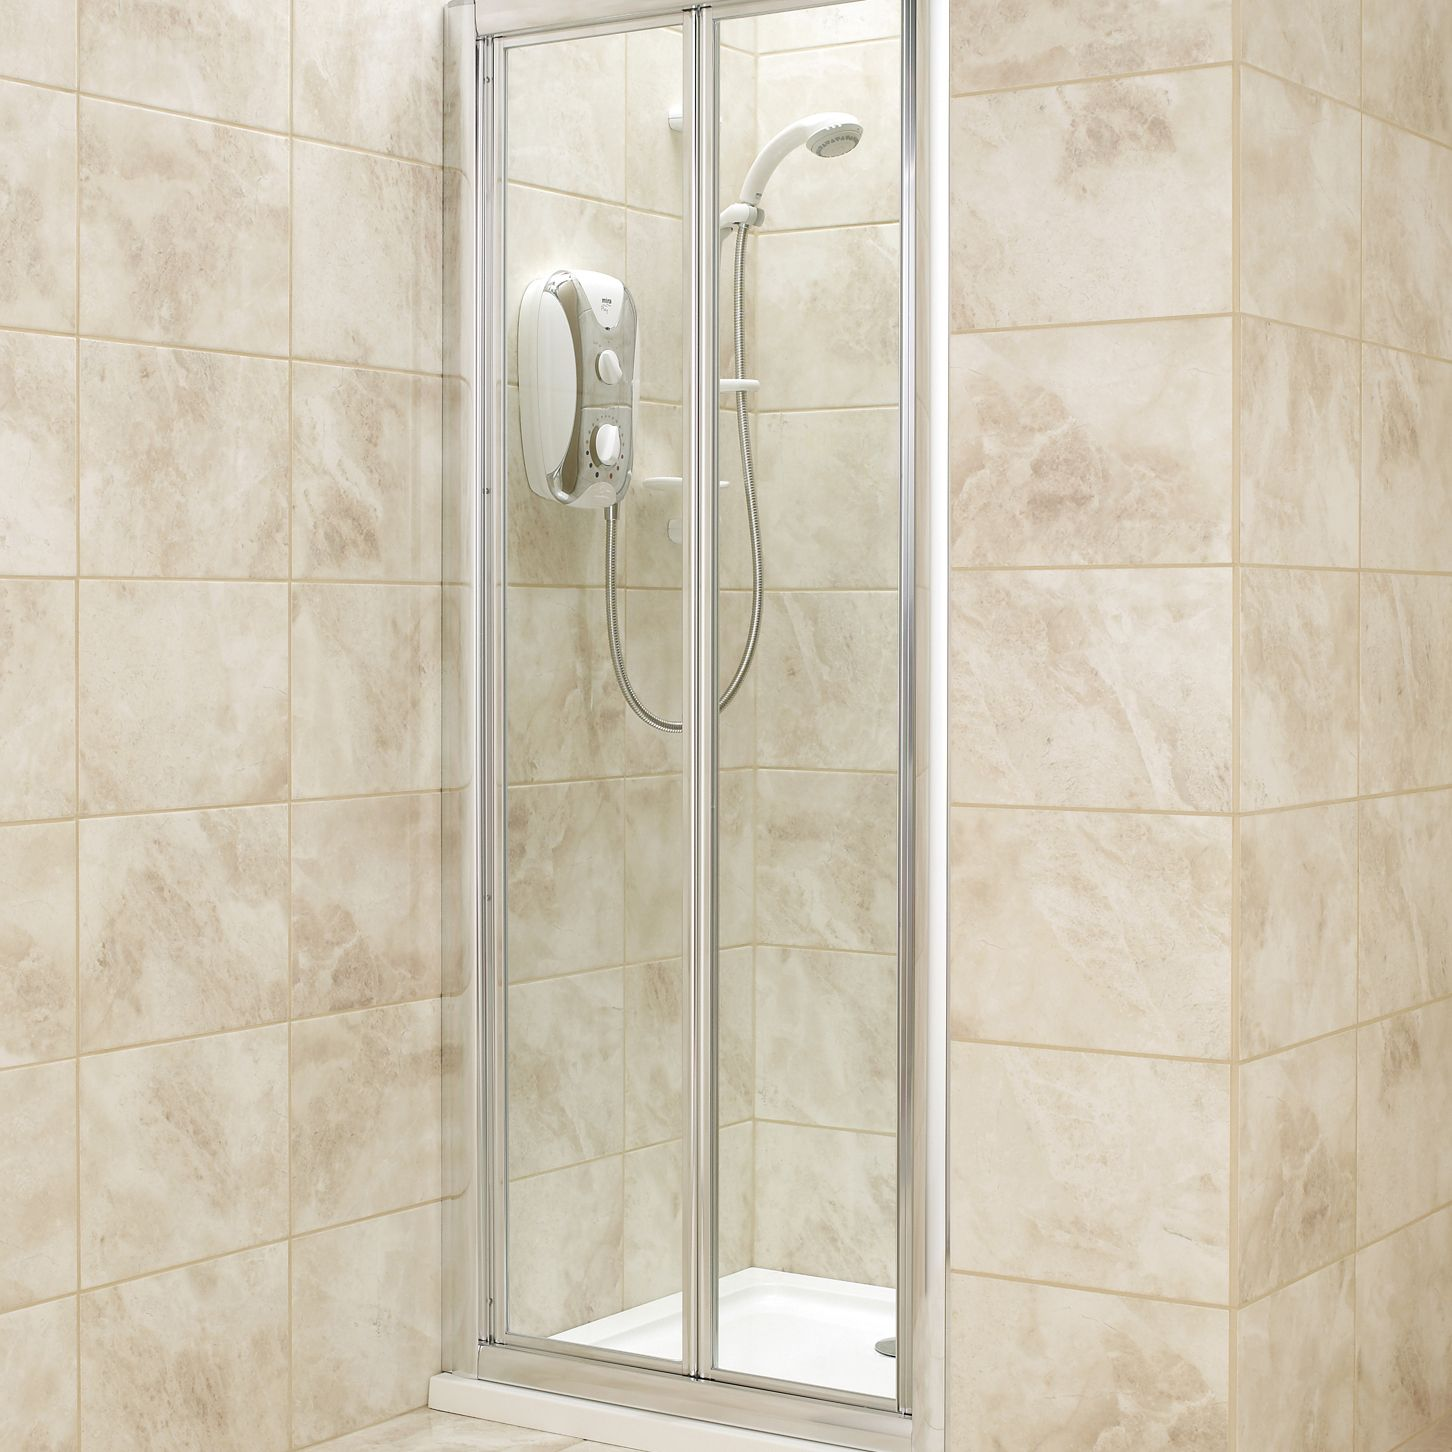 B Q Shower Door With Bi Fold Door W 760mm Departments Diy At B Q